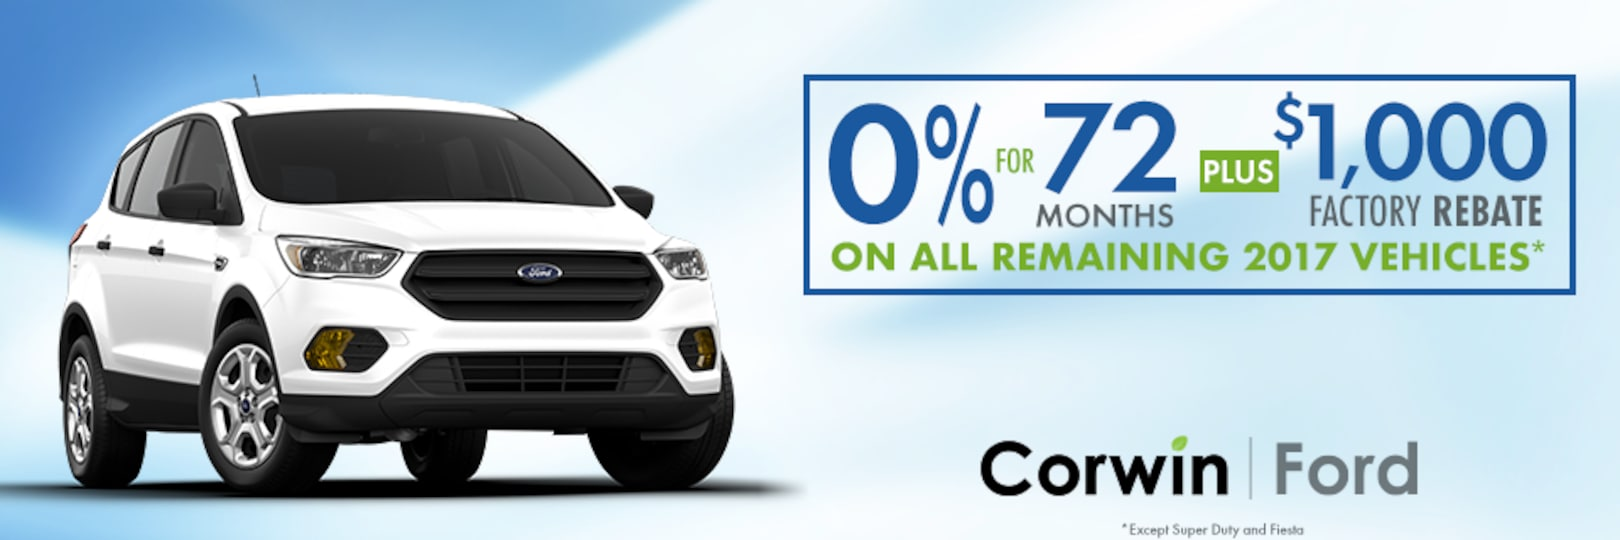 Corwin Ford Used Cars